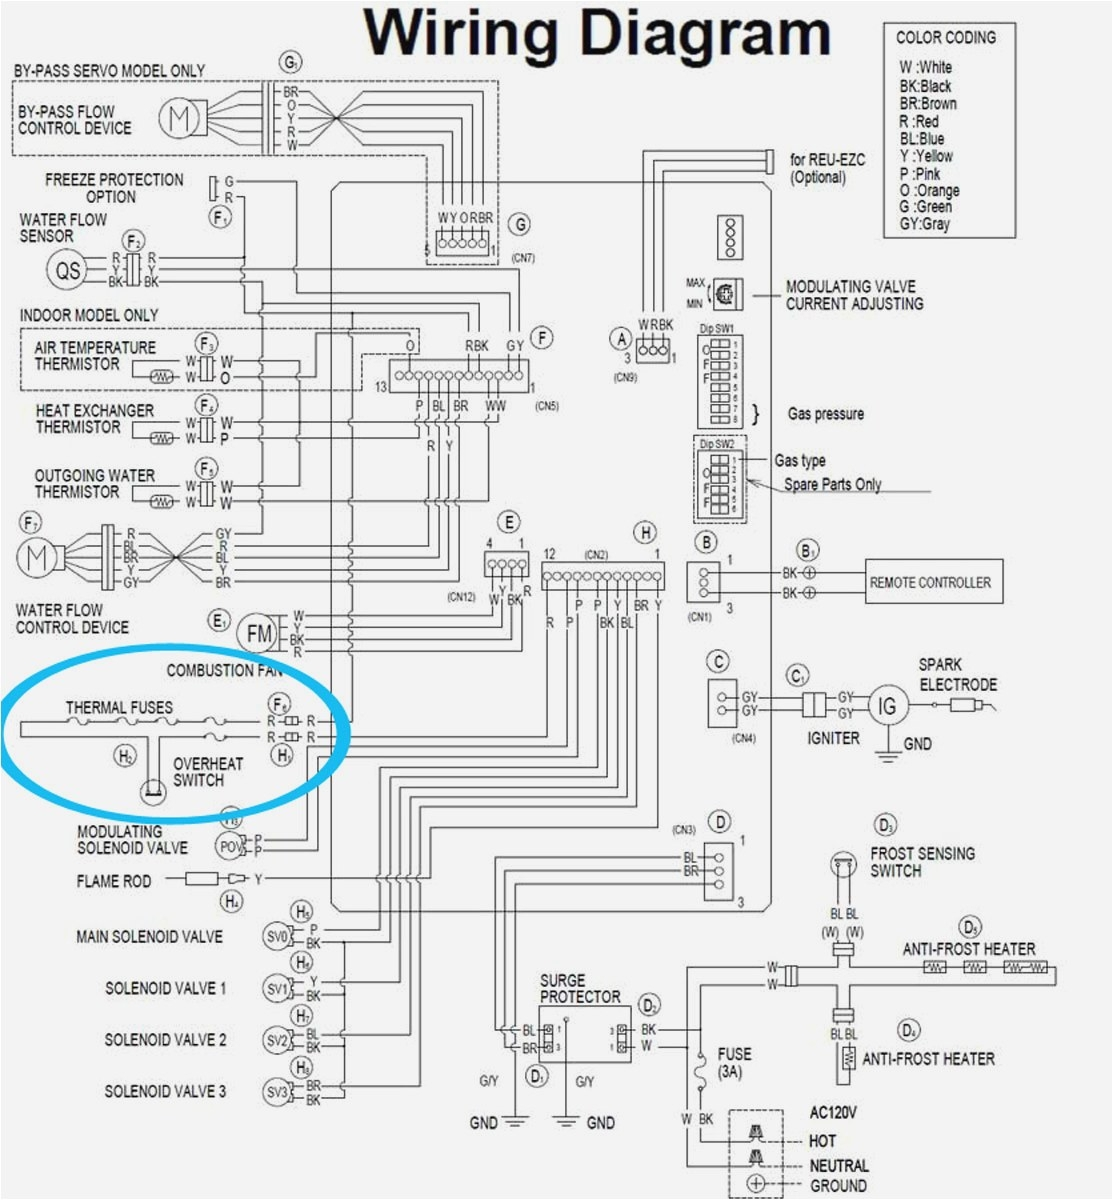 hight resolution of electric hot water tank wiring diagram electric water heater wiring diagram new troubleshoot rheem tankless